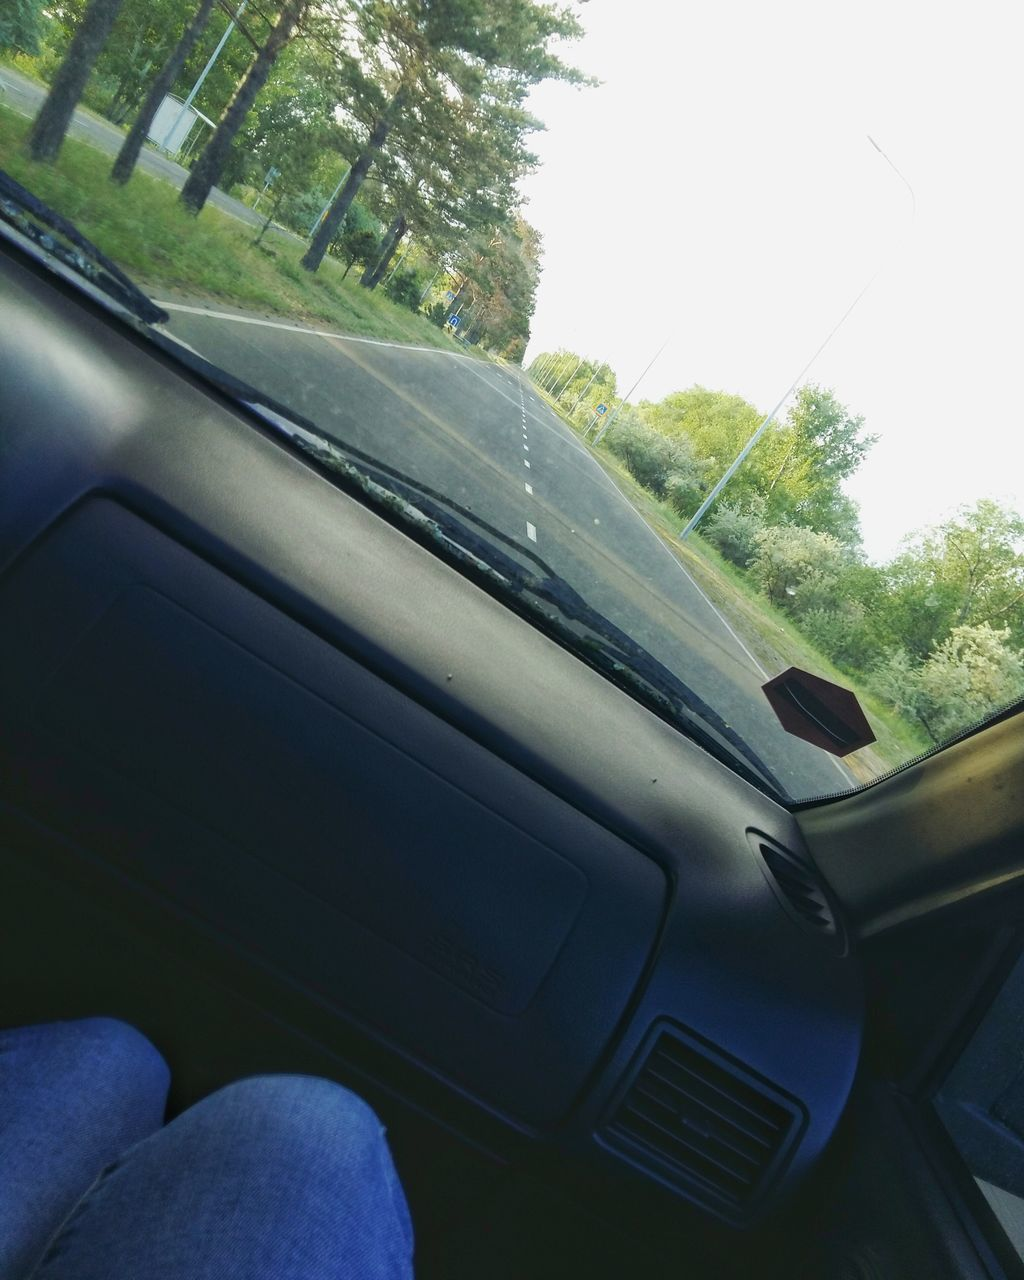 car, car interior, land vehicle, vehicle interior, transportation, windshield, mode of transport, tree, day, window, dashboard, no people, close-up, nature, indoors, sky